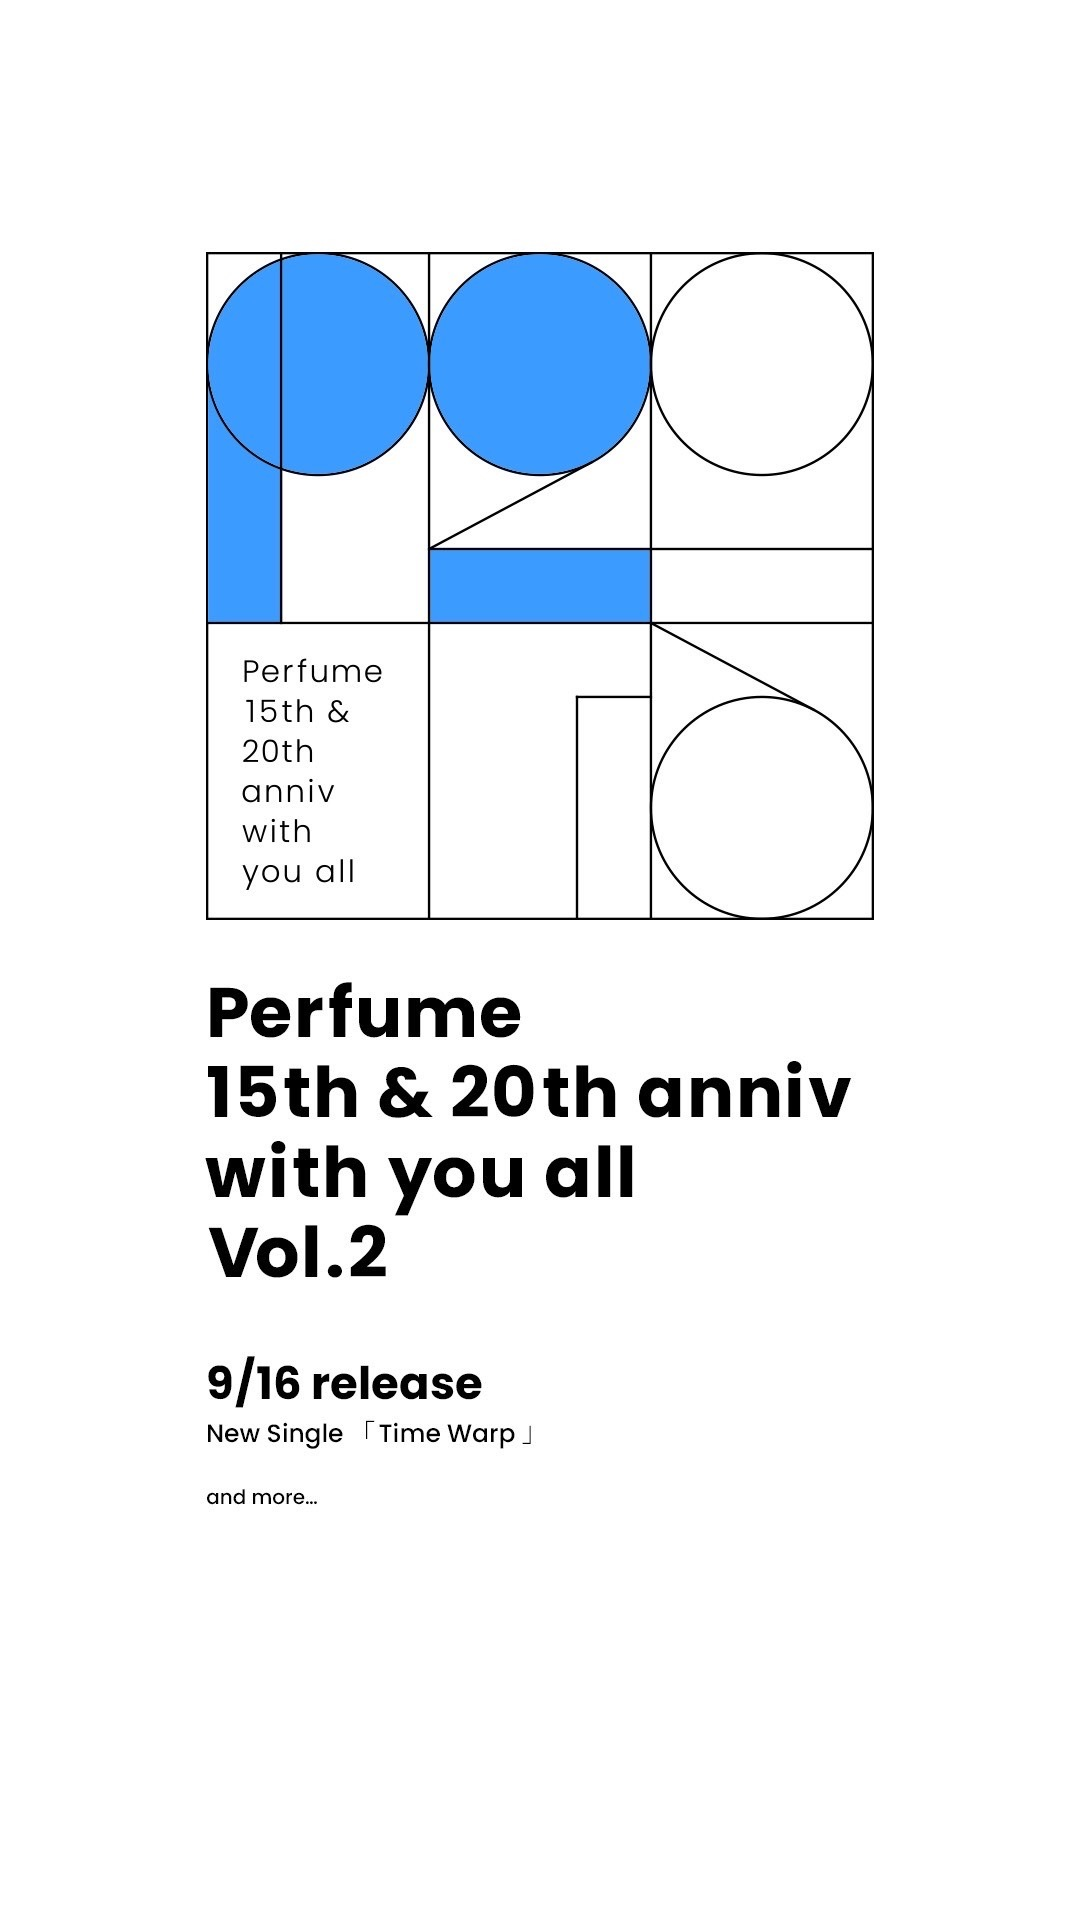 『Perfume 15th&20th anniv with you all』Vol.2